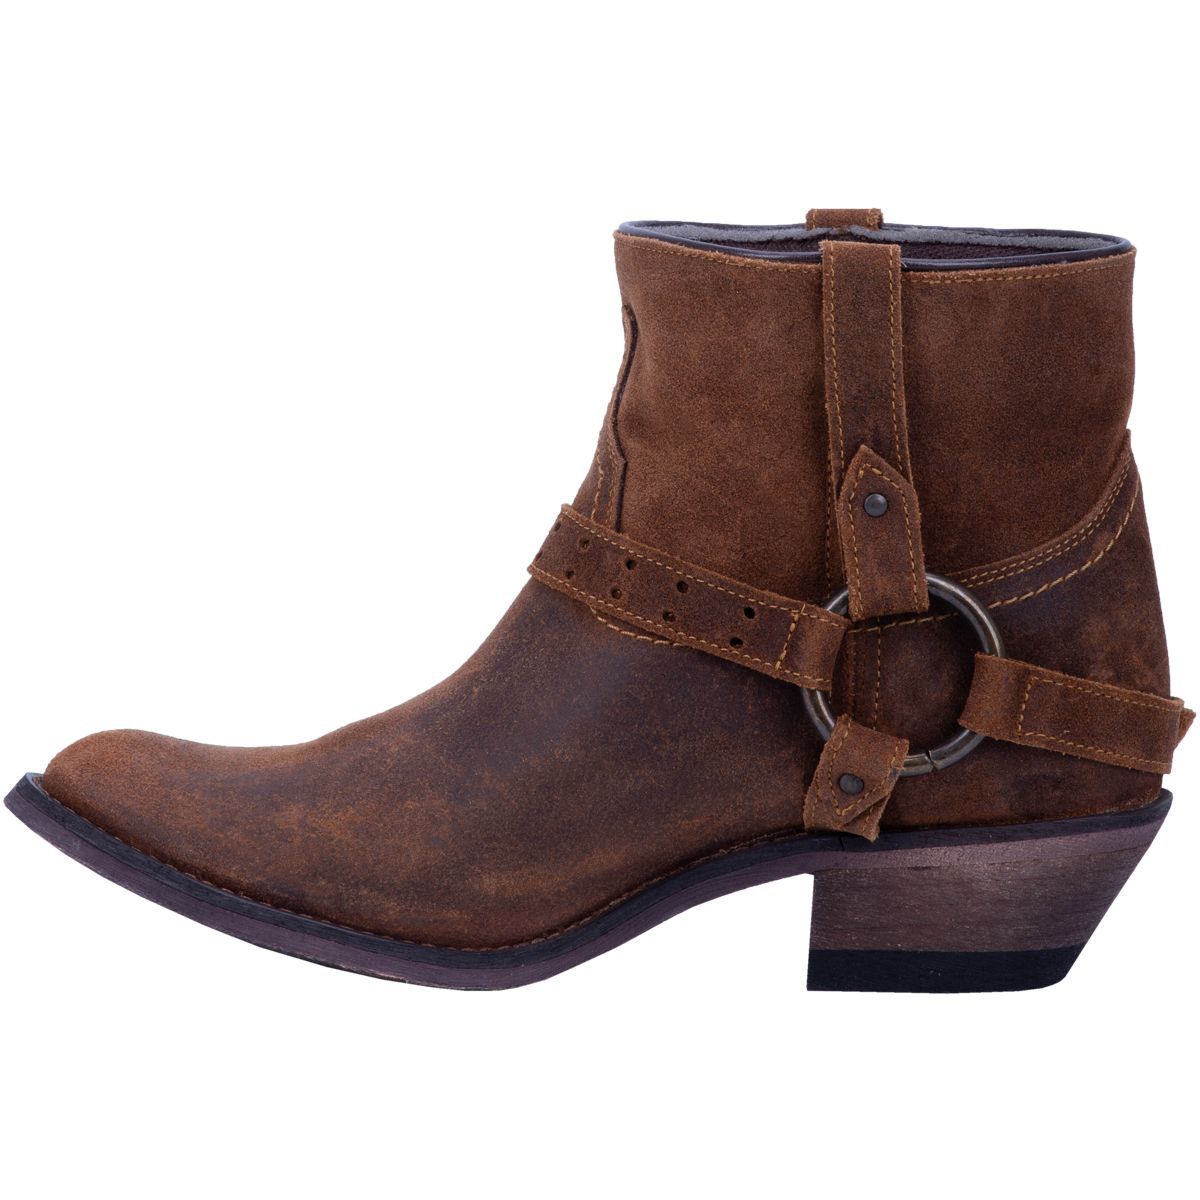 Dan Post Women's Emersyn Bootie 3153